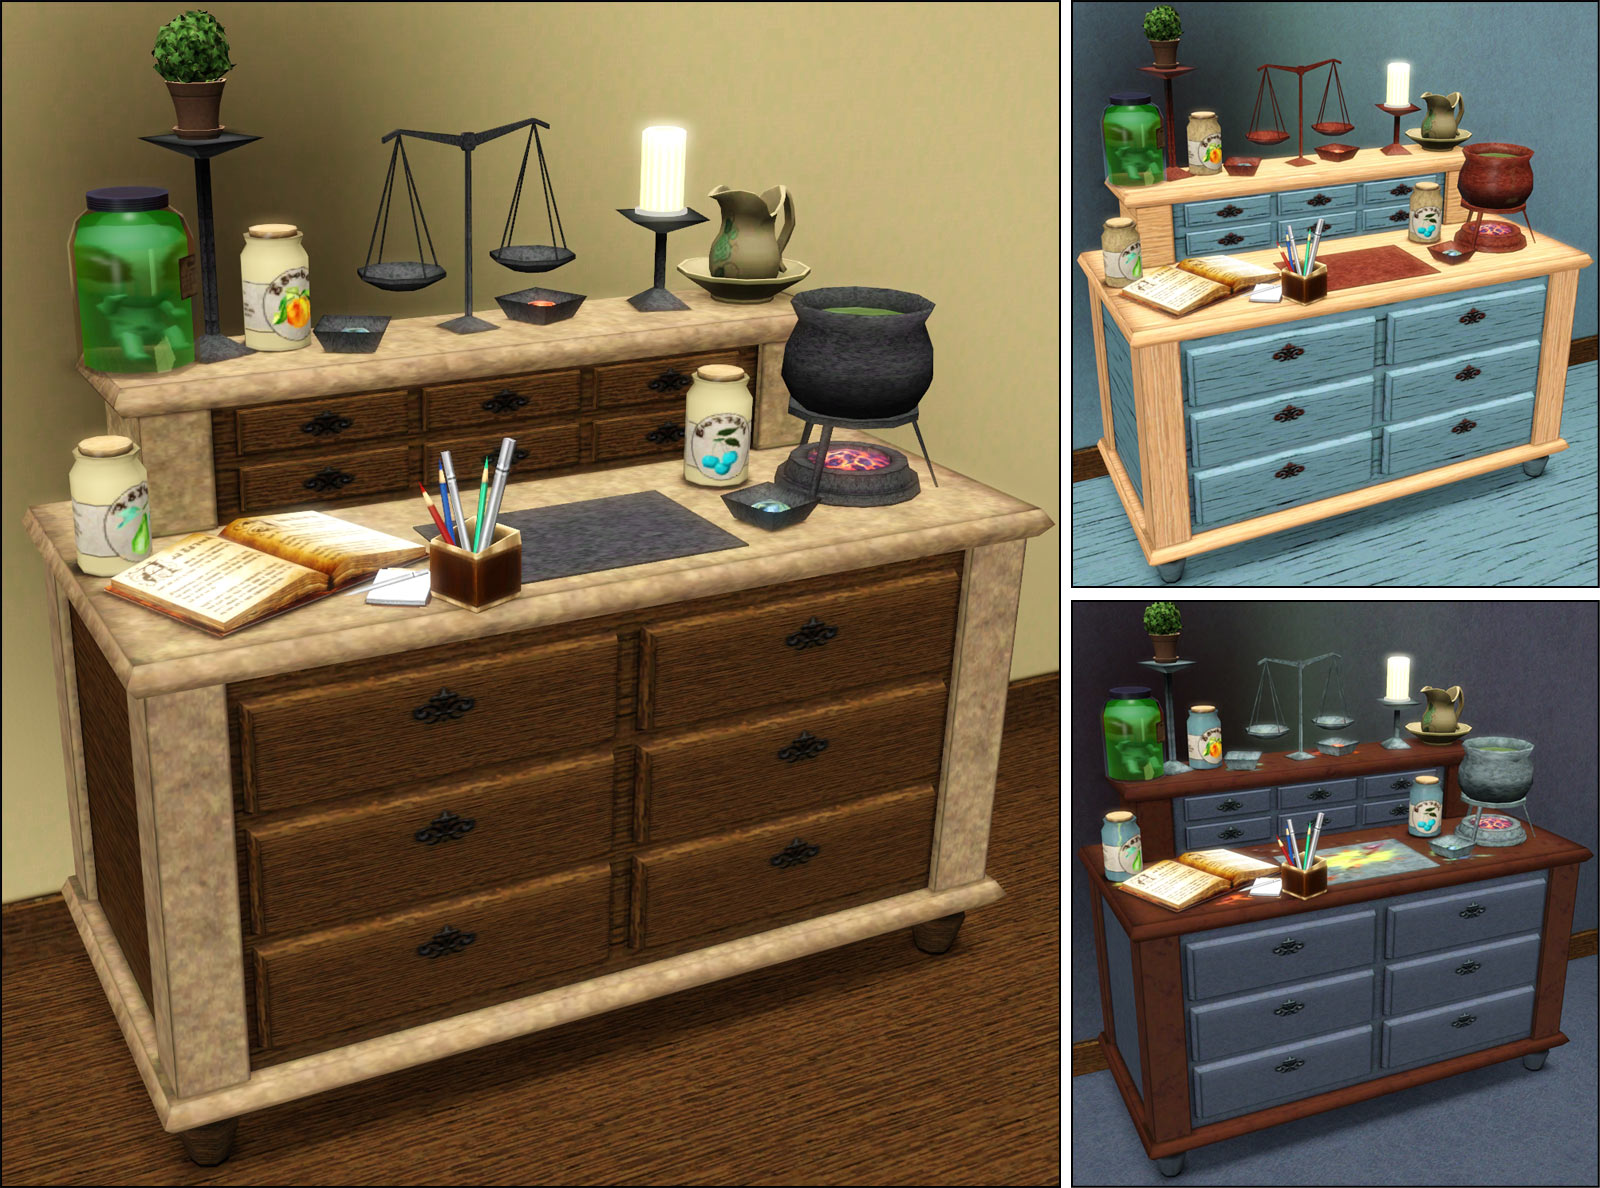 Parsimonious The Sims 3: Furniture